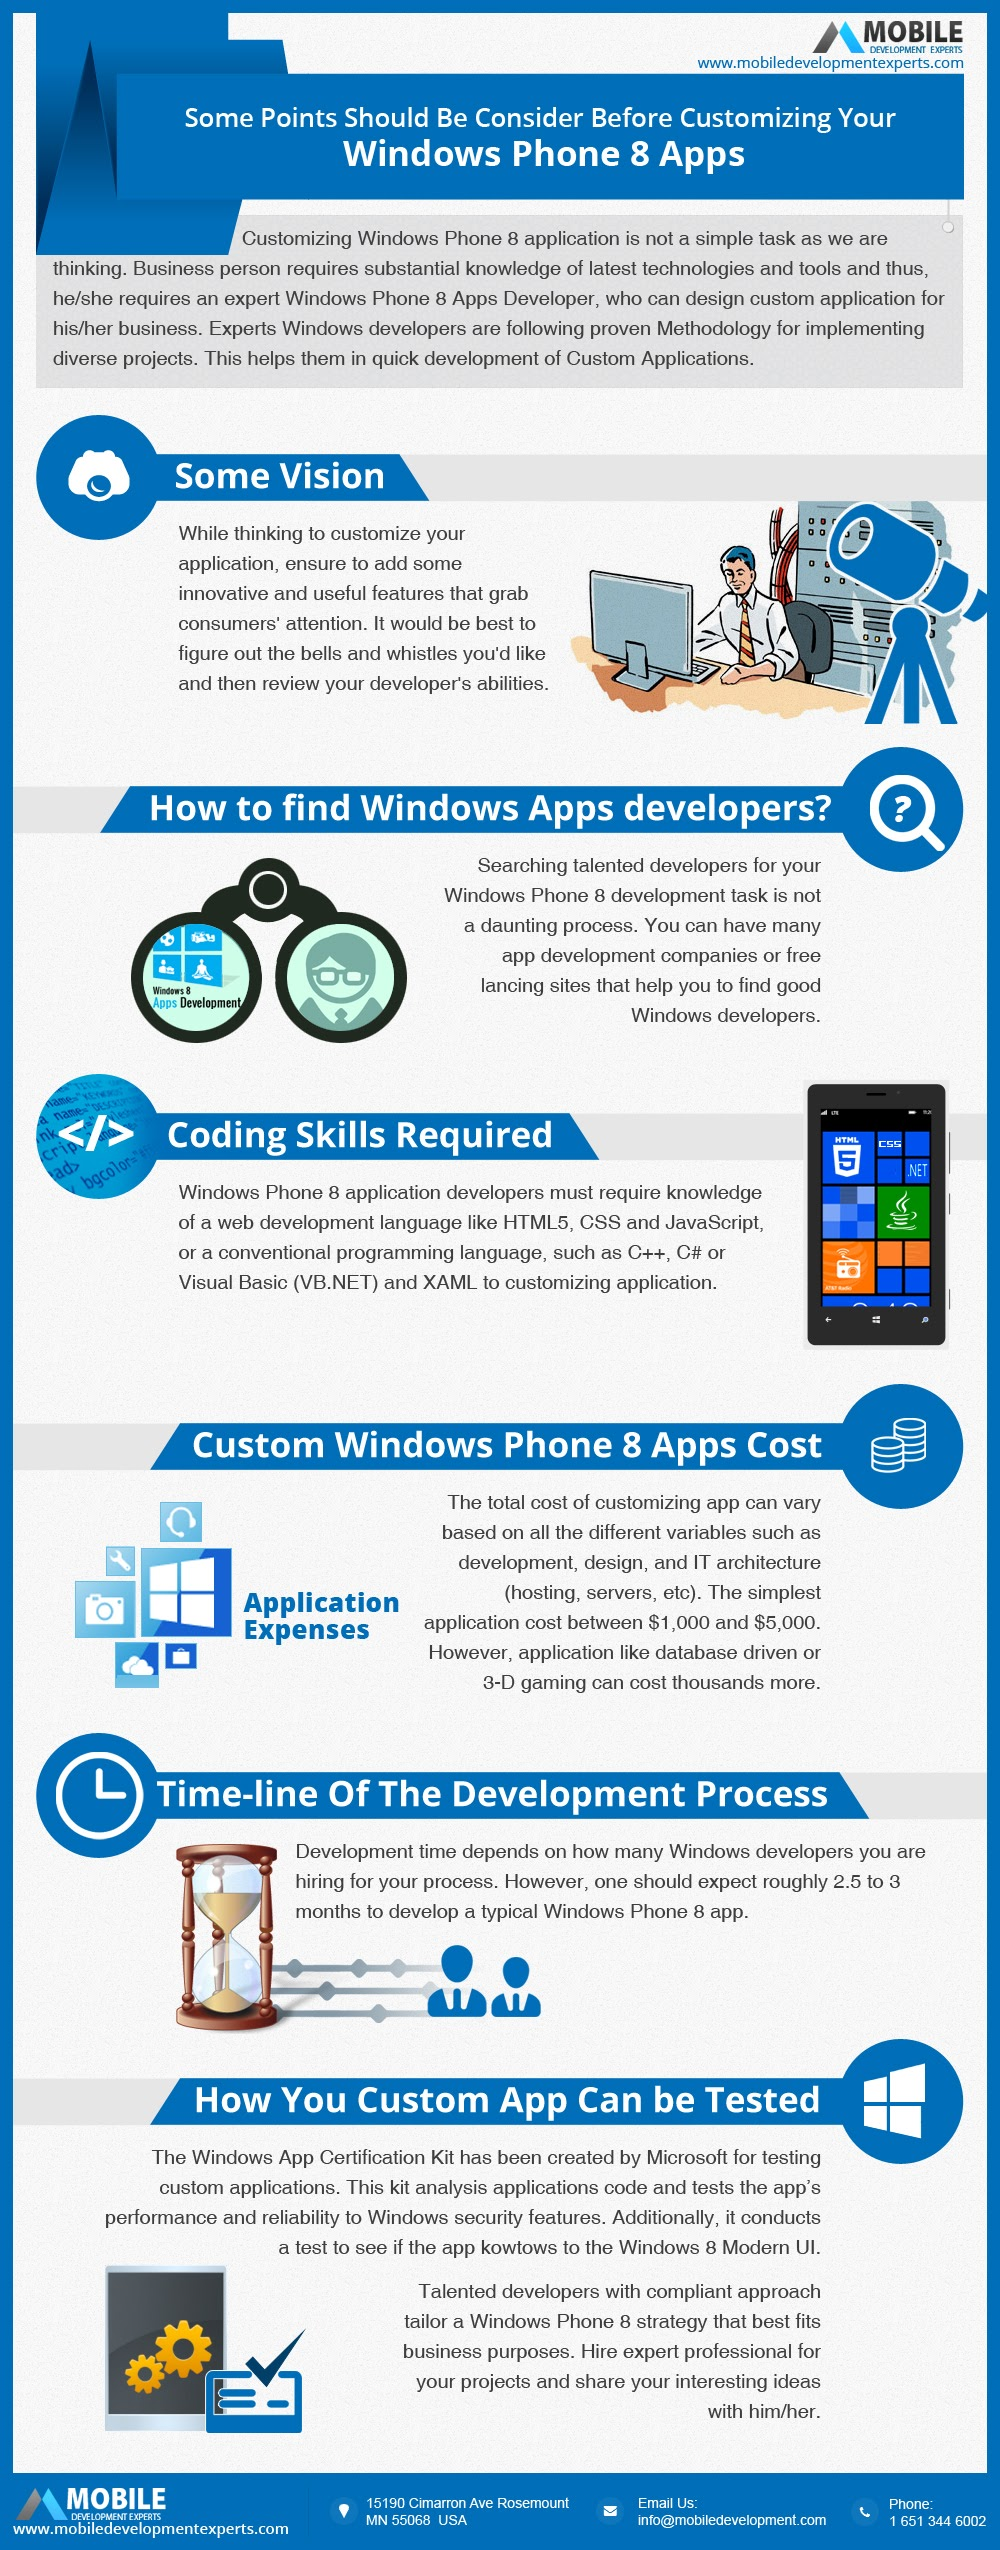 Important-Points-To-Consider-Before-Customizing-Windows-Phone-8-Apps #infographic